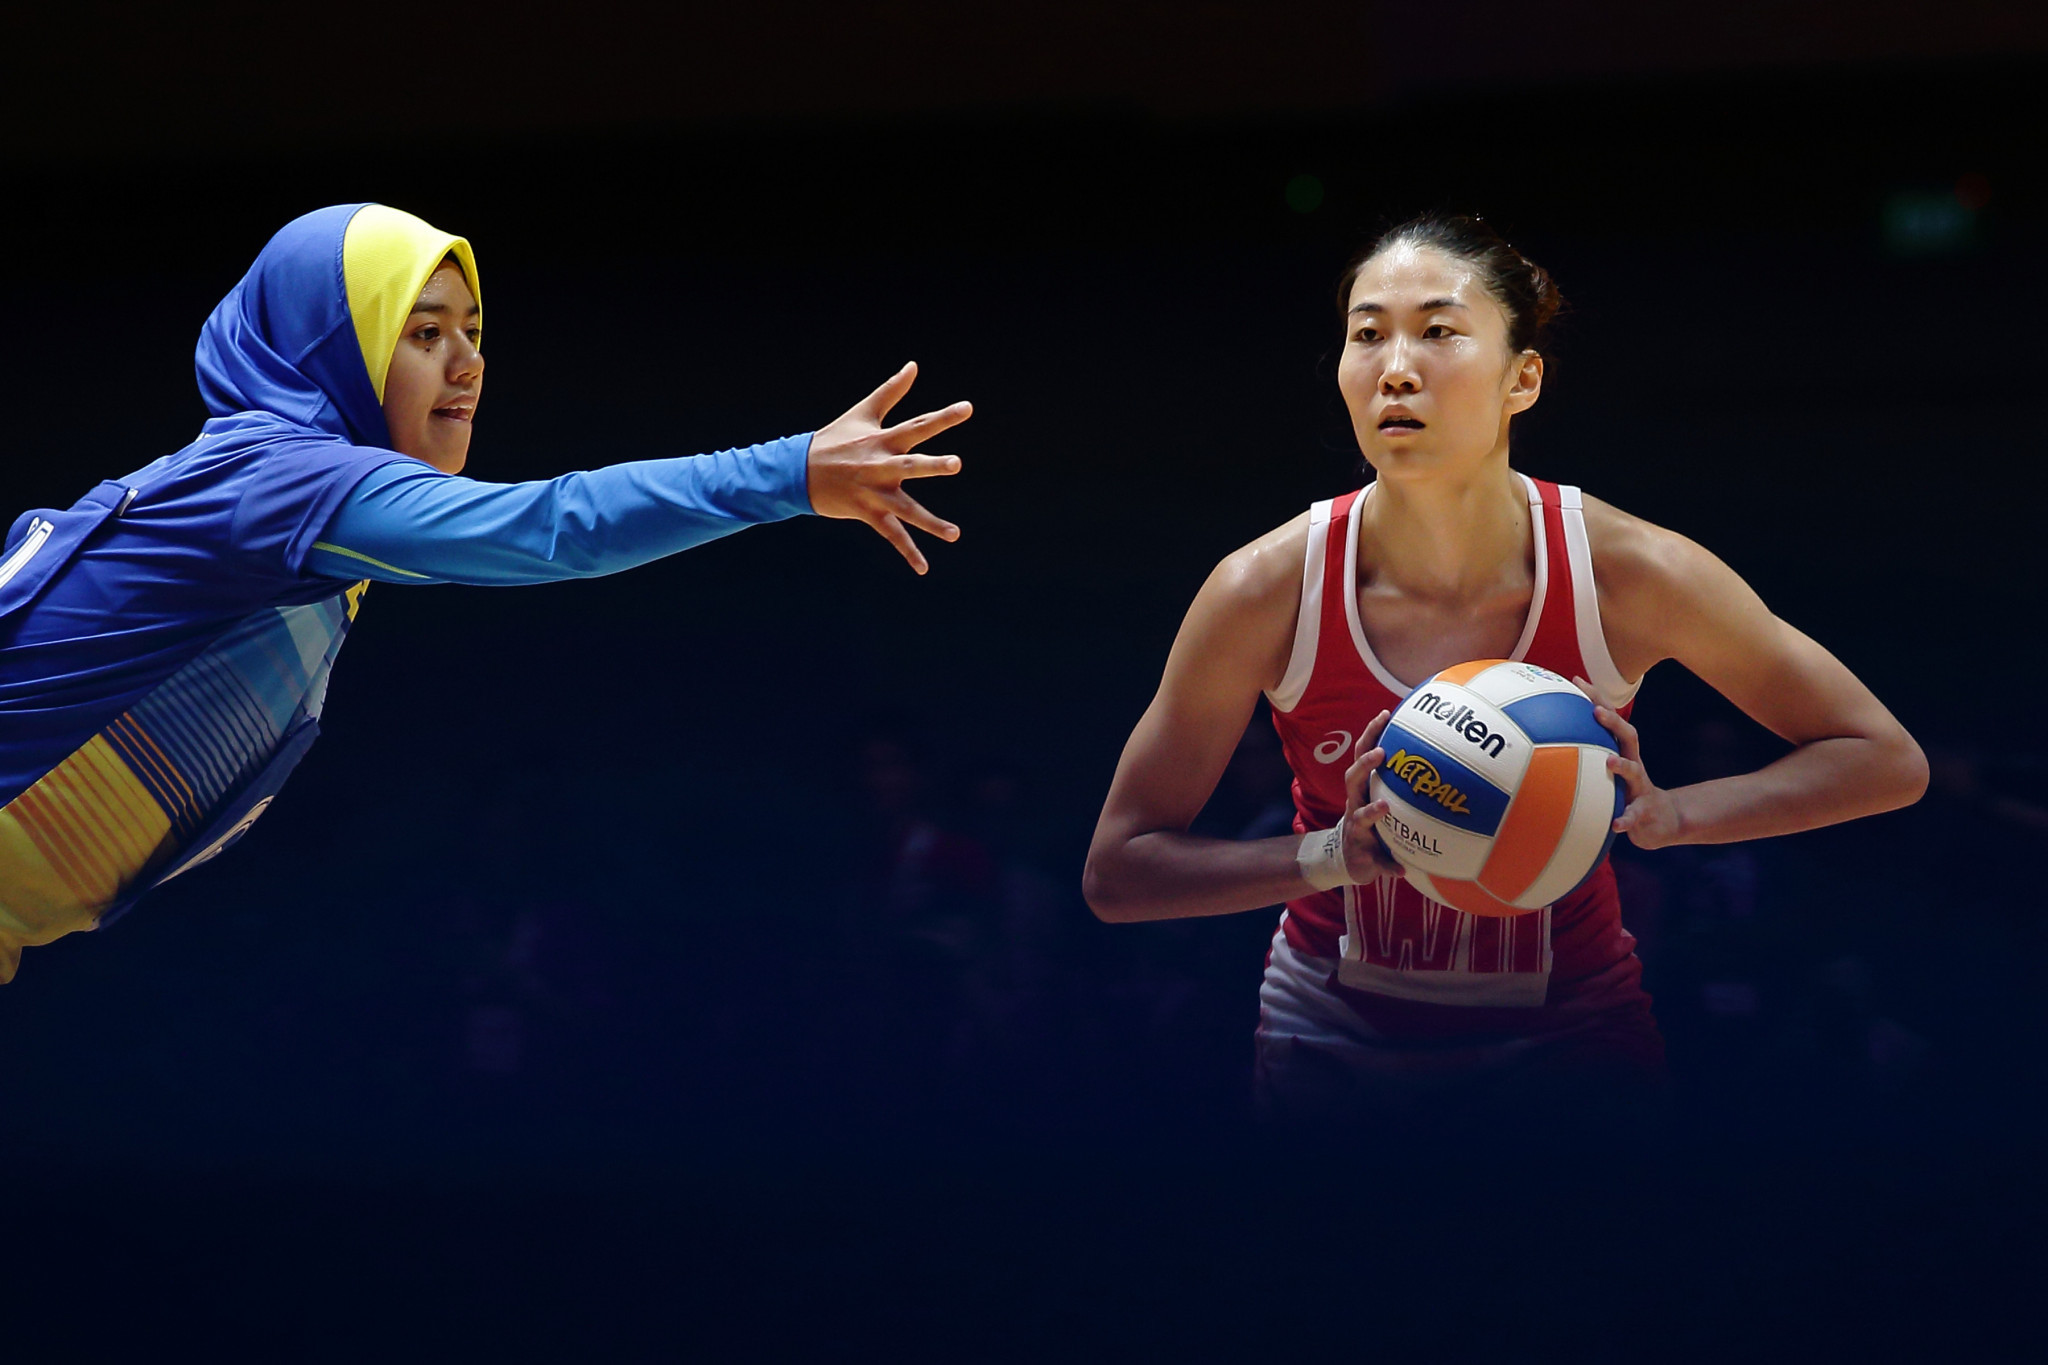 Hosts Singapore stay in the hunt at Netball World Cup Asian qualifier